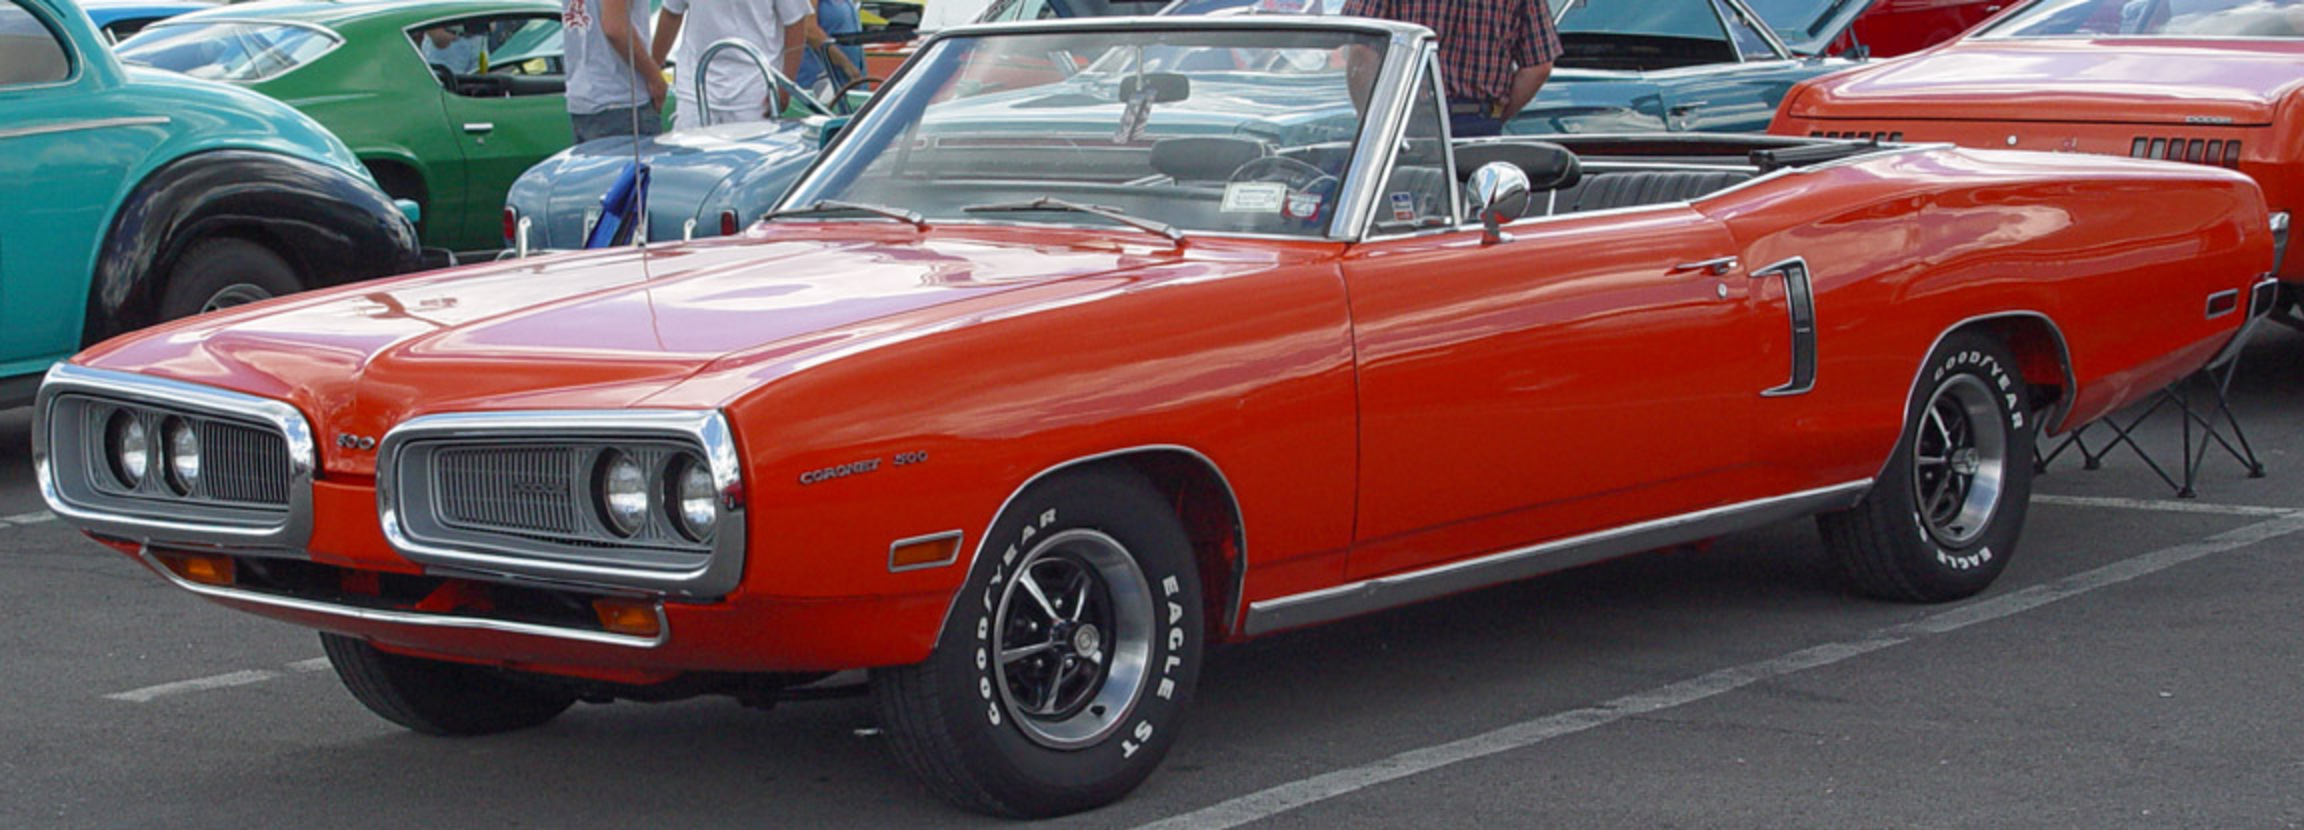 Dodge Coronet 500 conv - huge collection of cars, auto news and reviews,